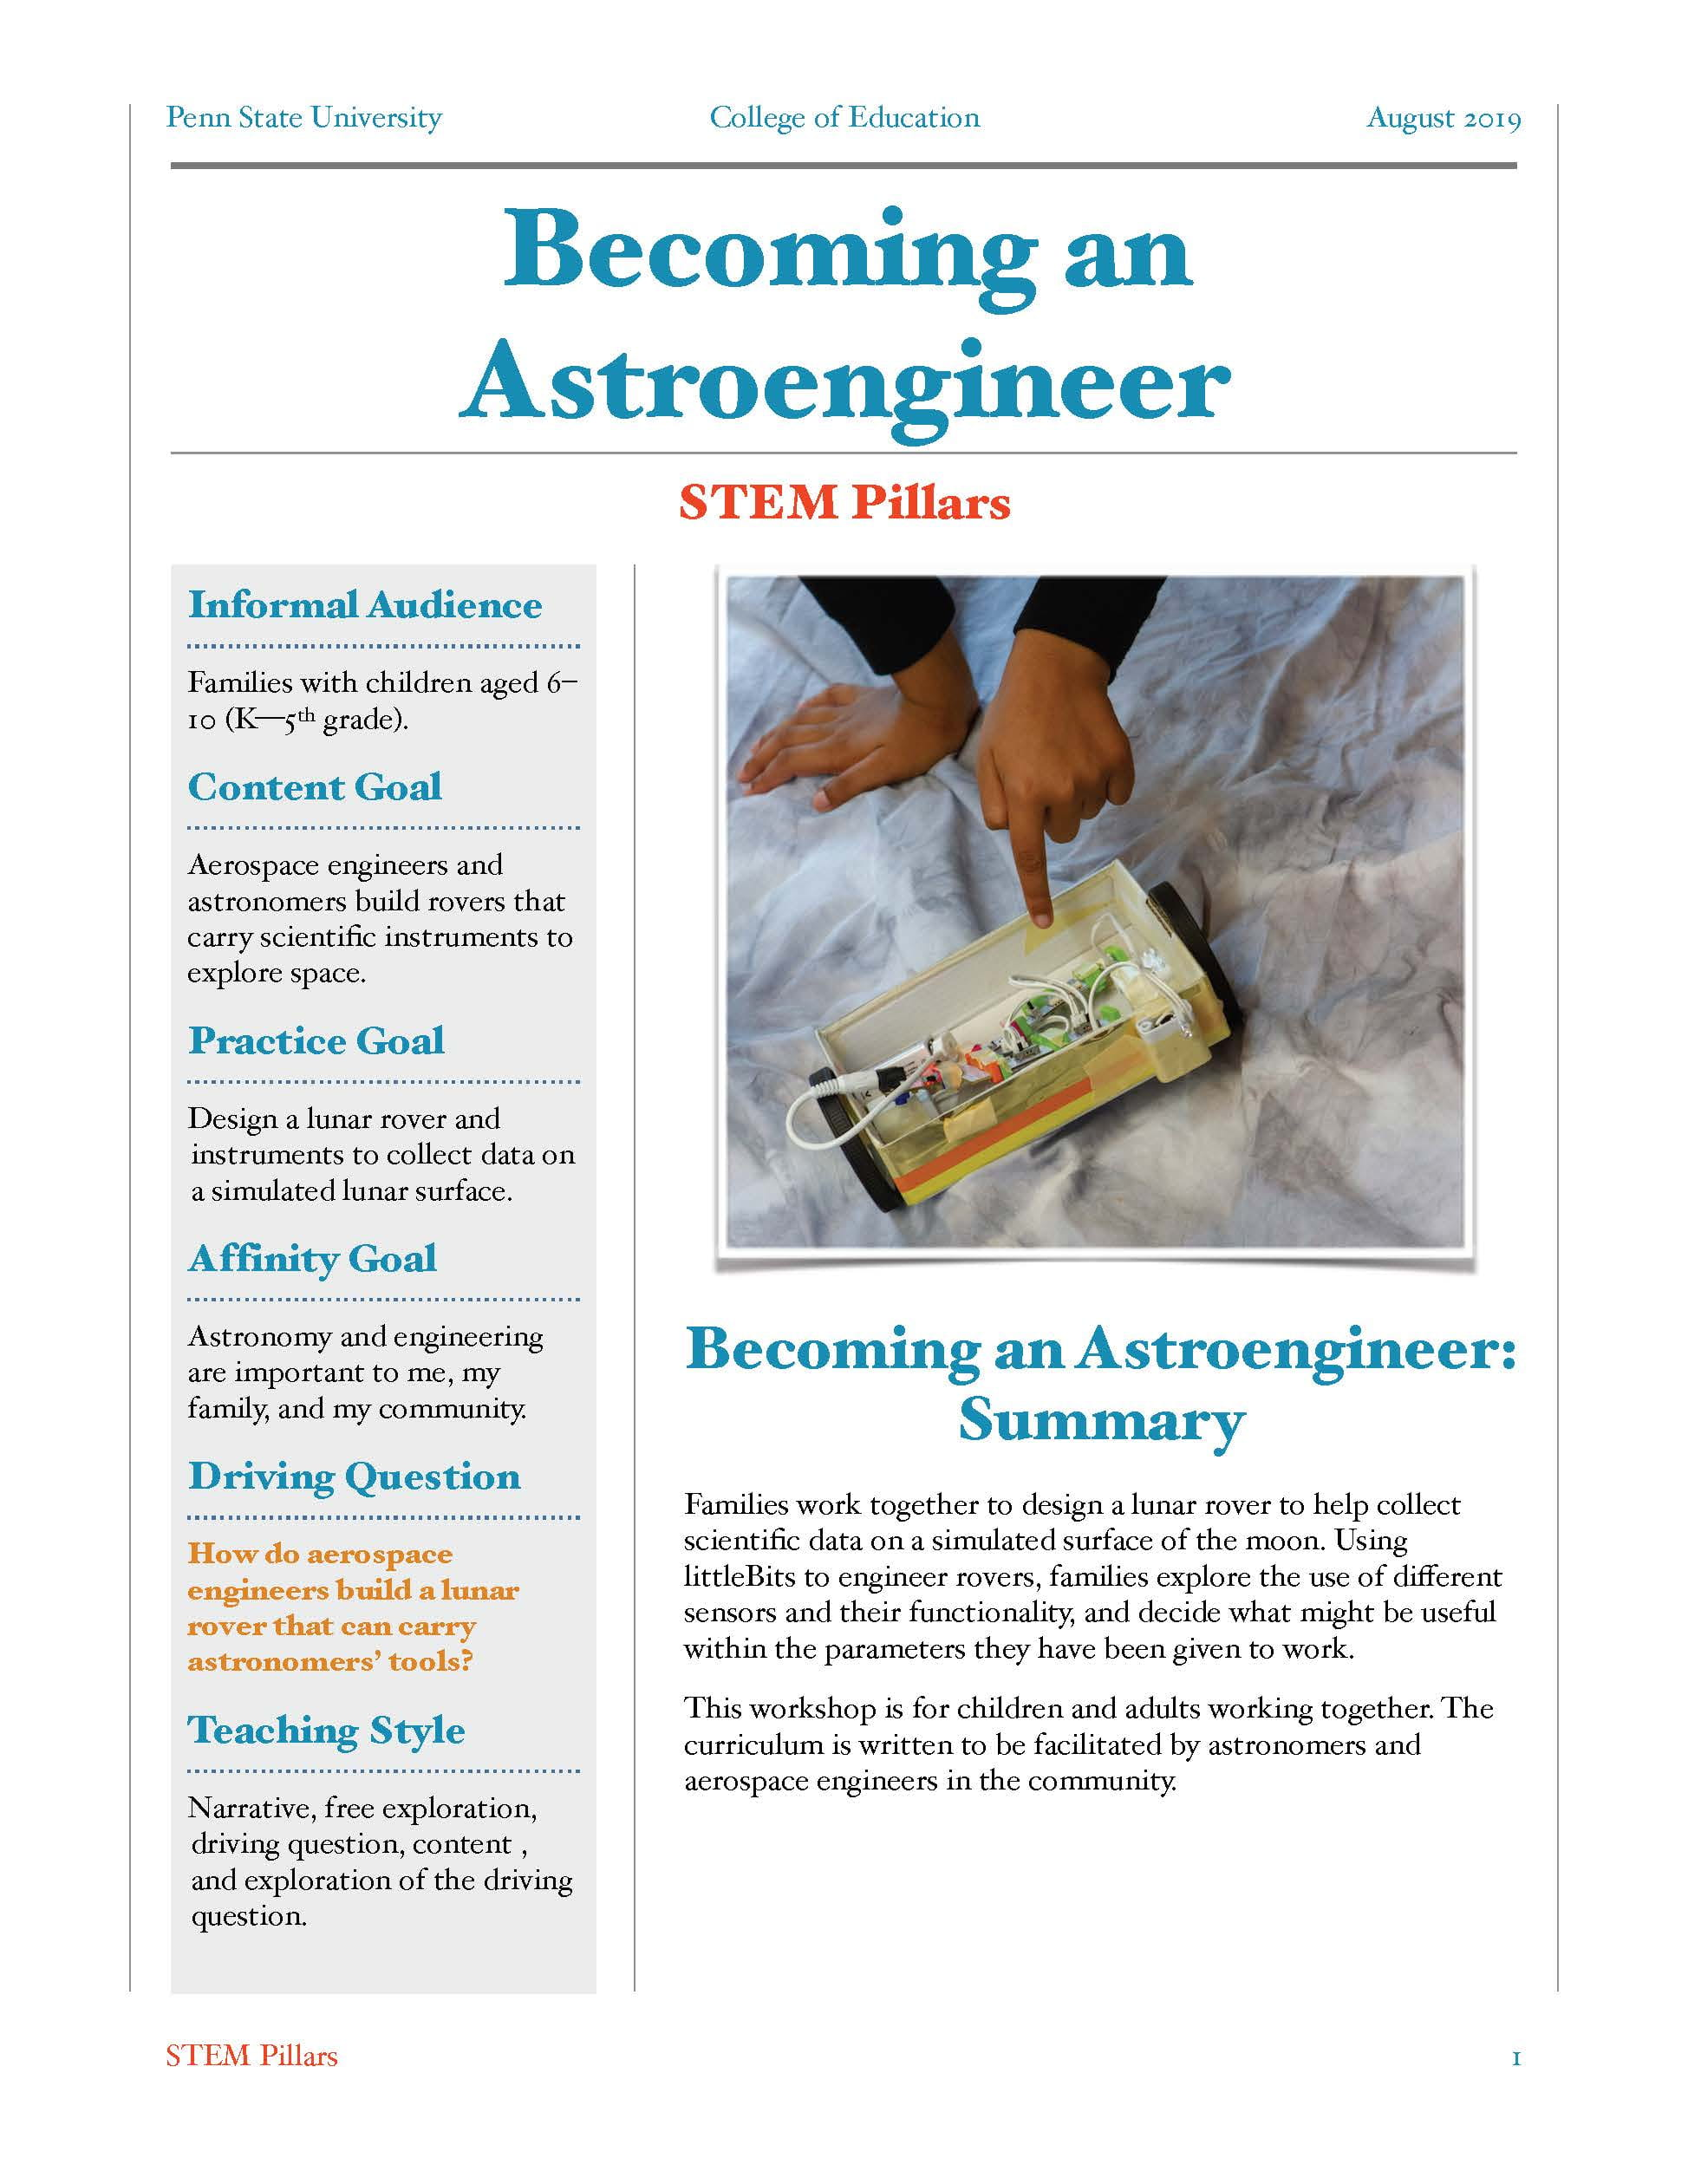 Download: Collecting Data with a Lunar Rover